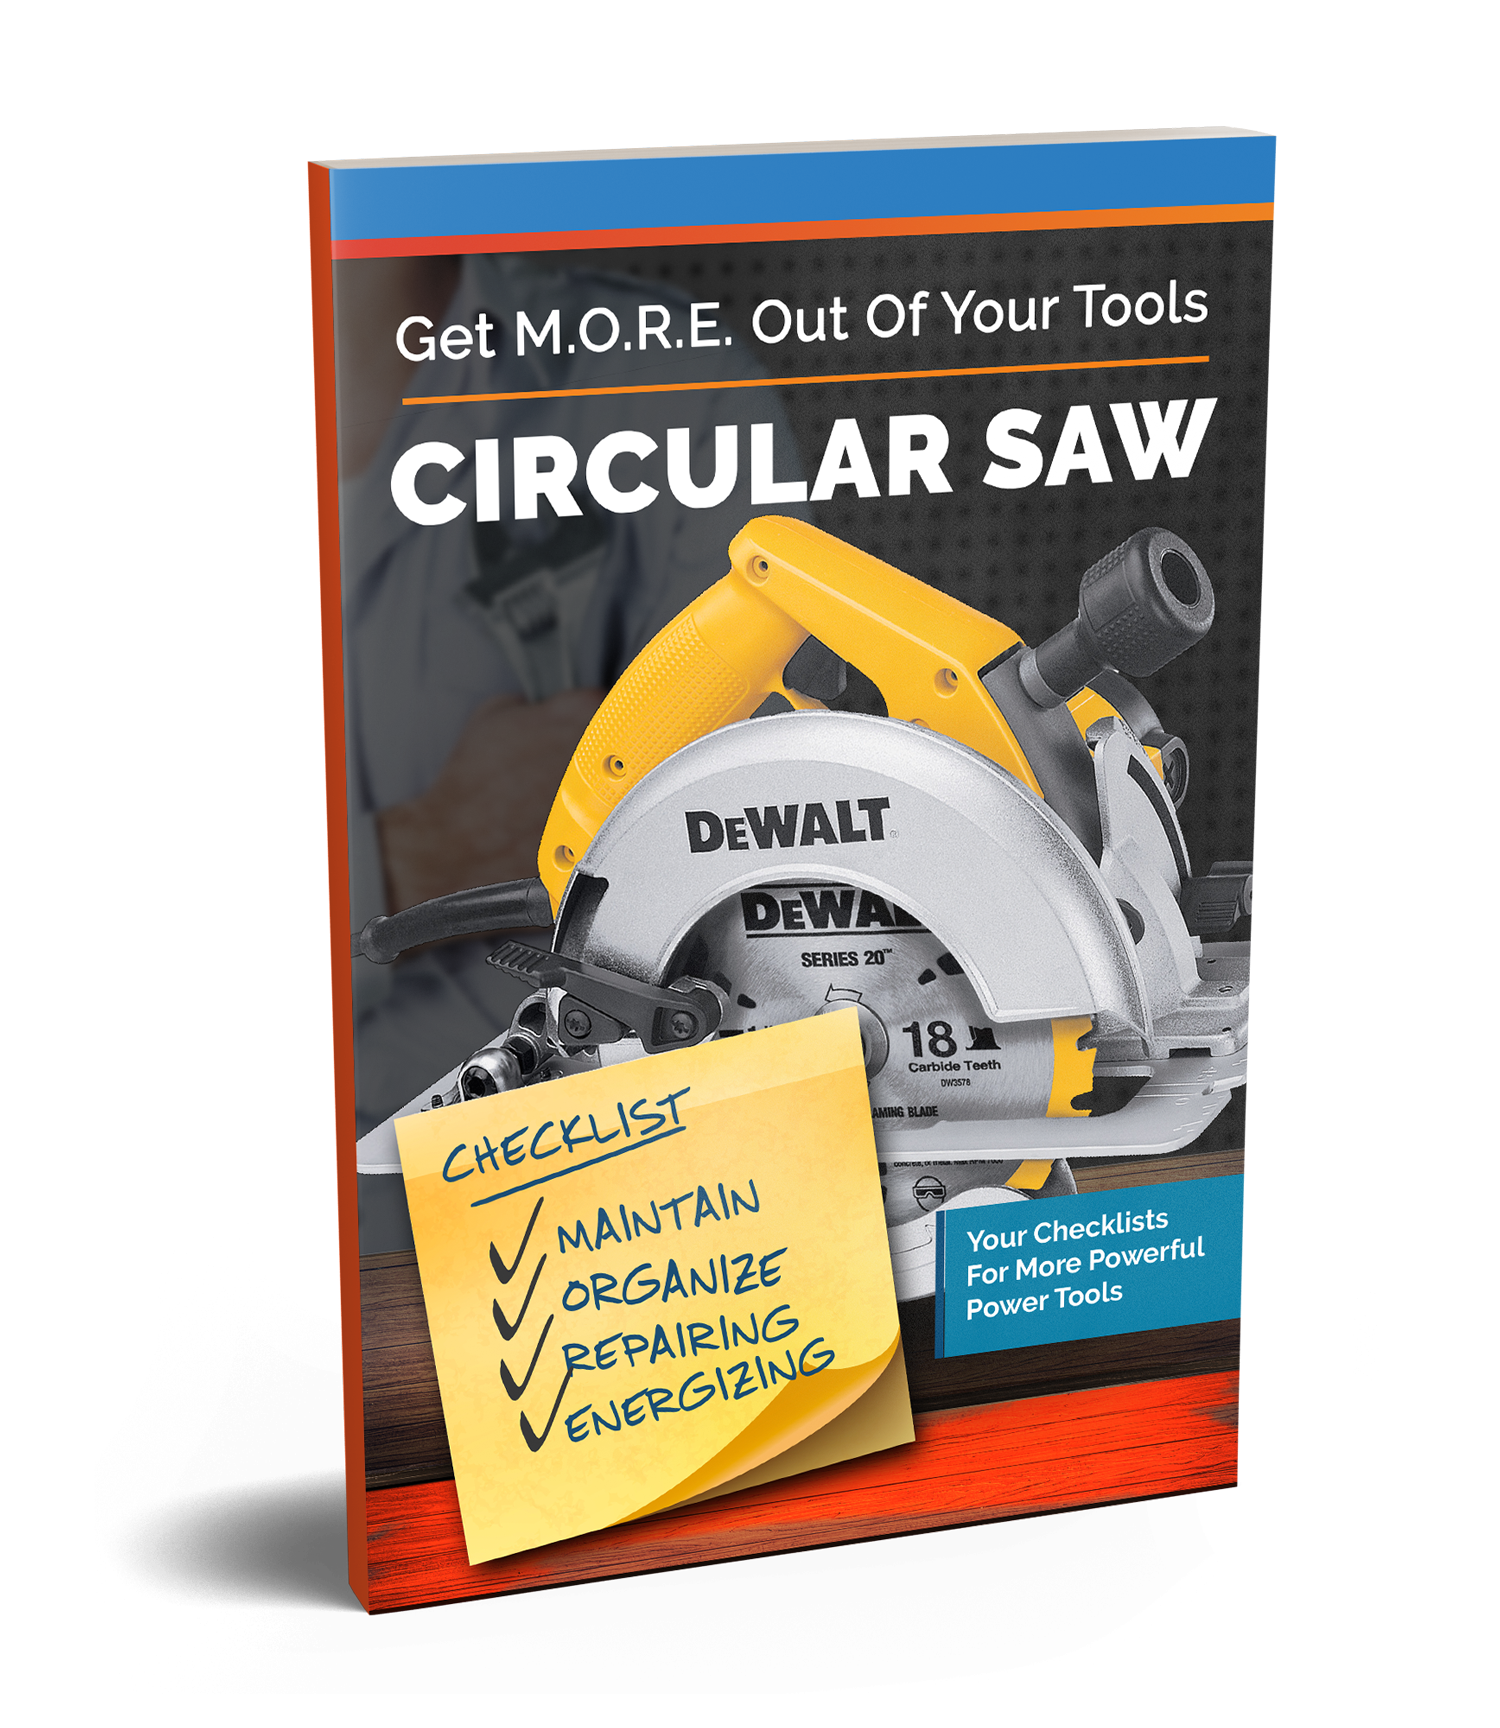 Checklists to get M.O.R.E out of your circular saws